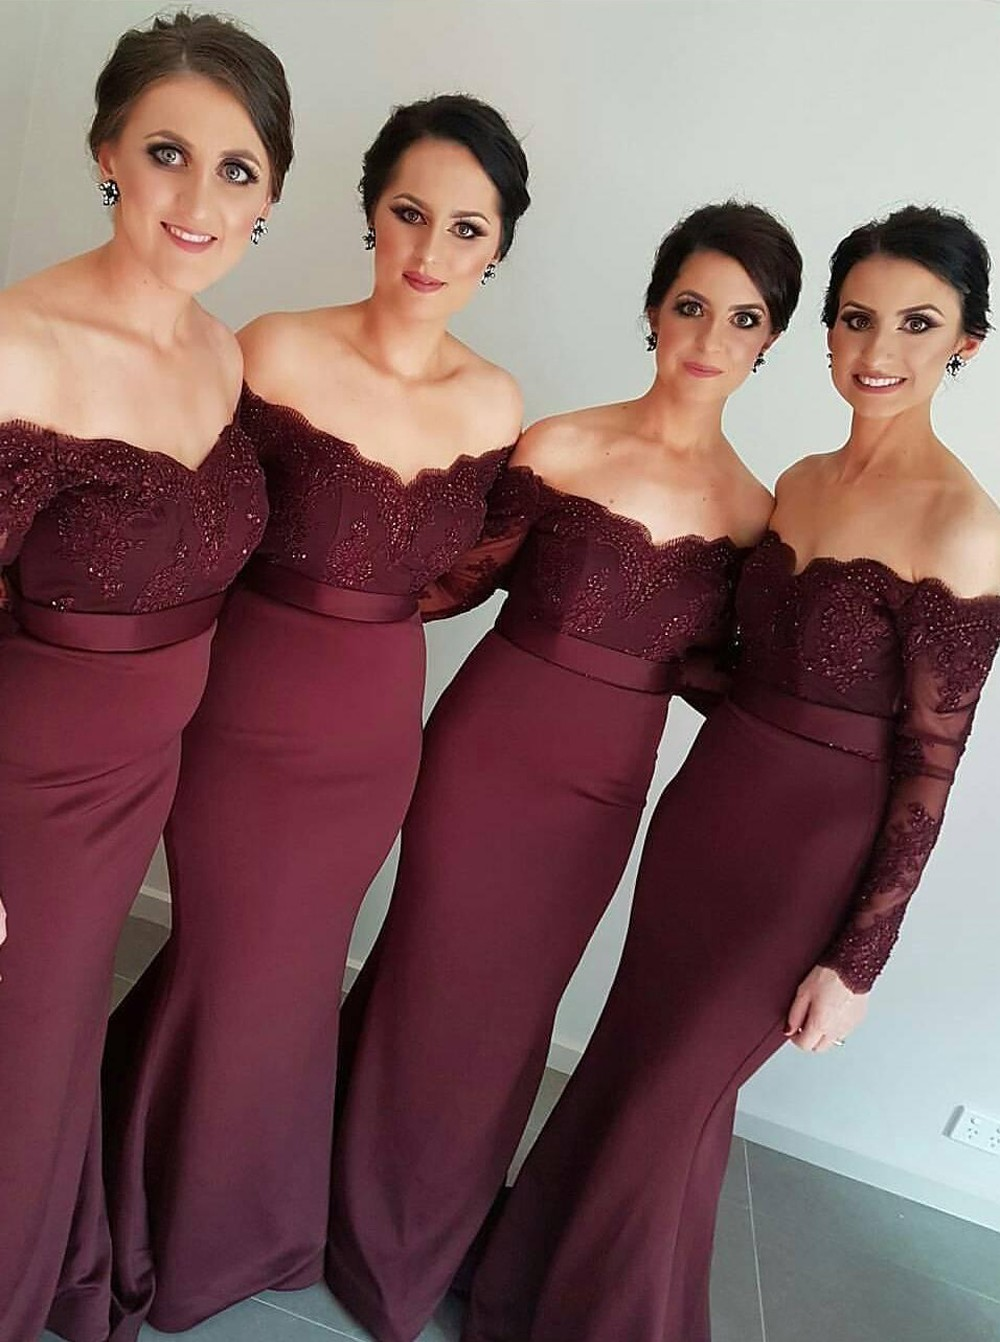 fa414111067 Floor Length Bridesmaid Dress 2049 · Onlyforbrides · Online Store ...